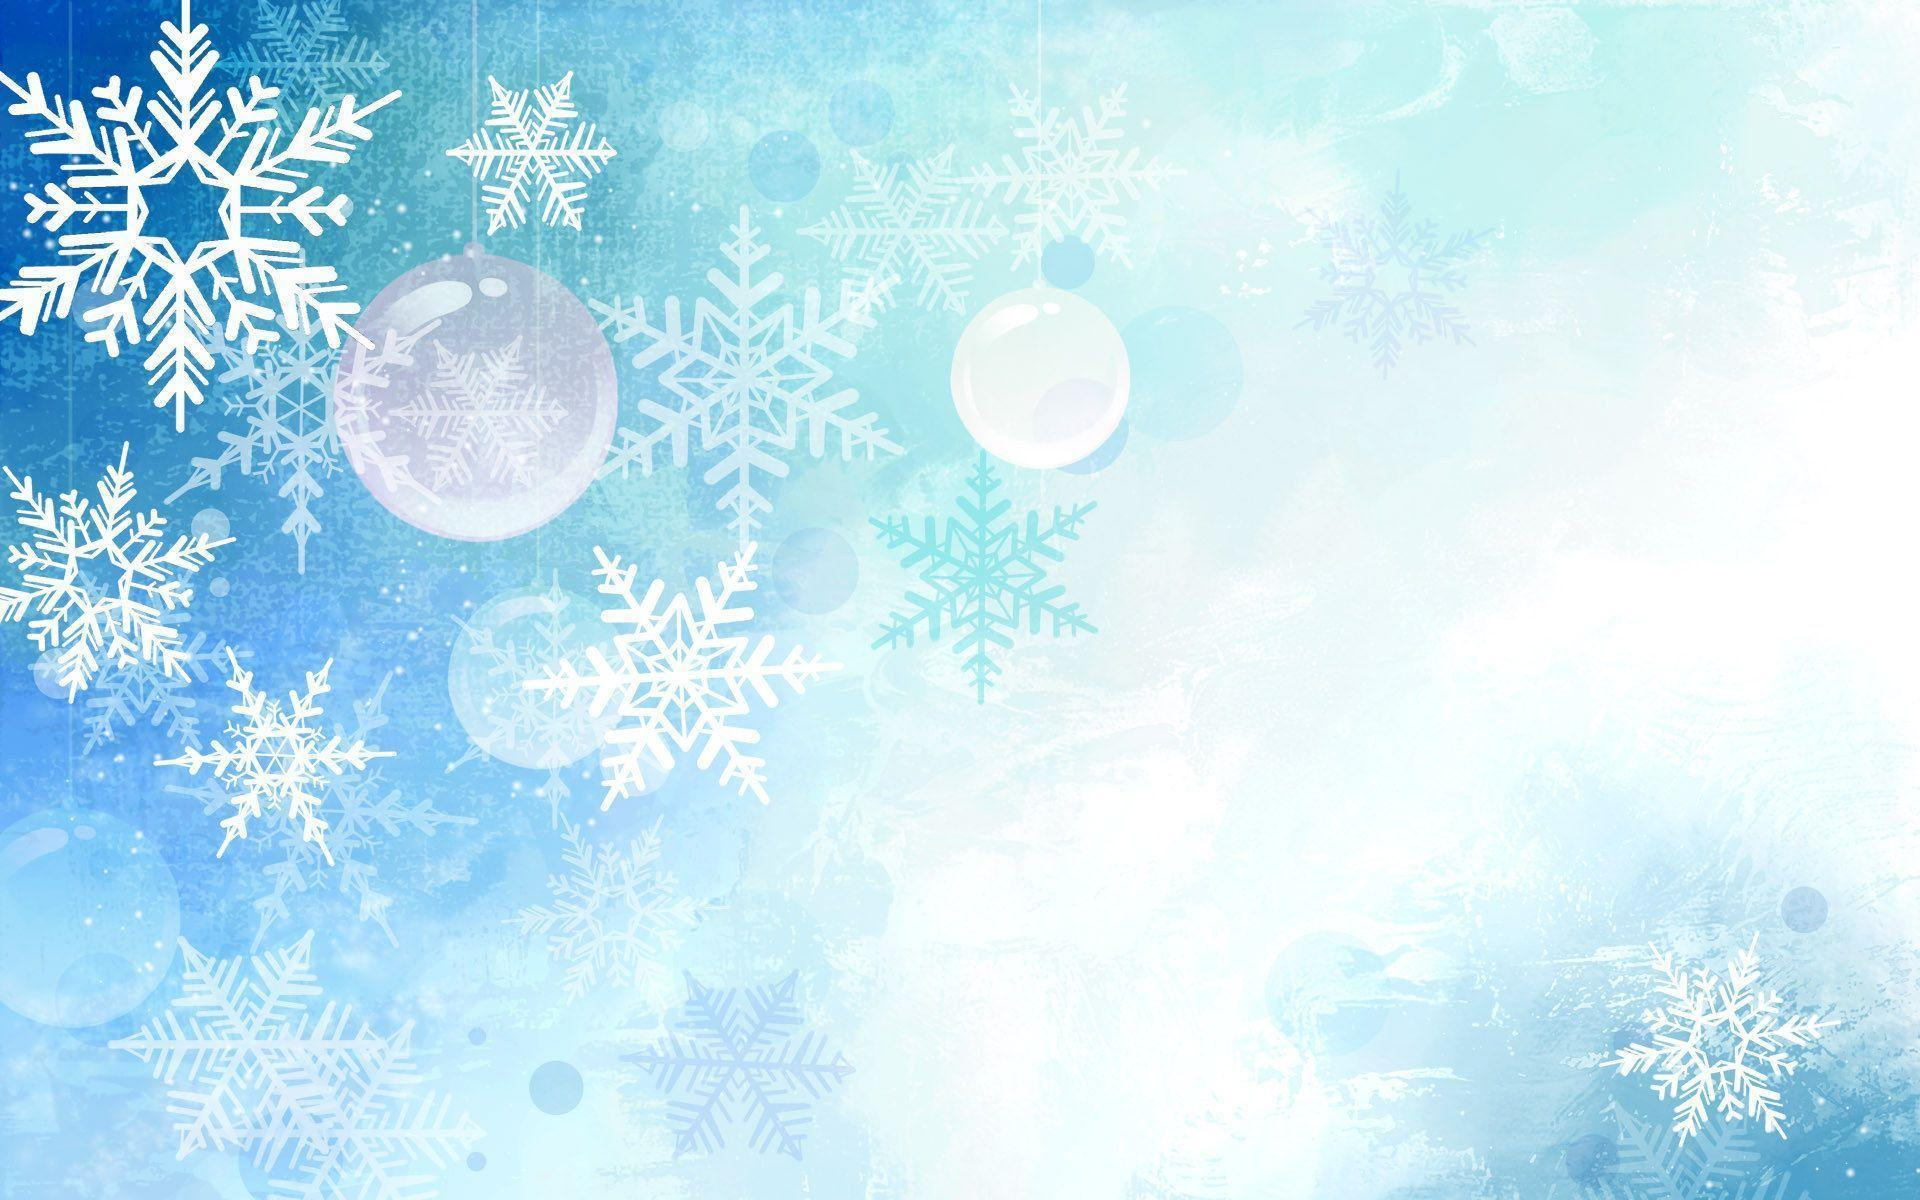 Christmas Snow Wallpaper Hd Widescreen 10 HD Wallpapers | Hdimges.